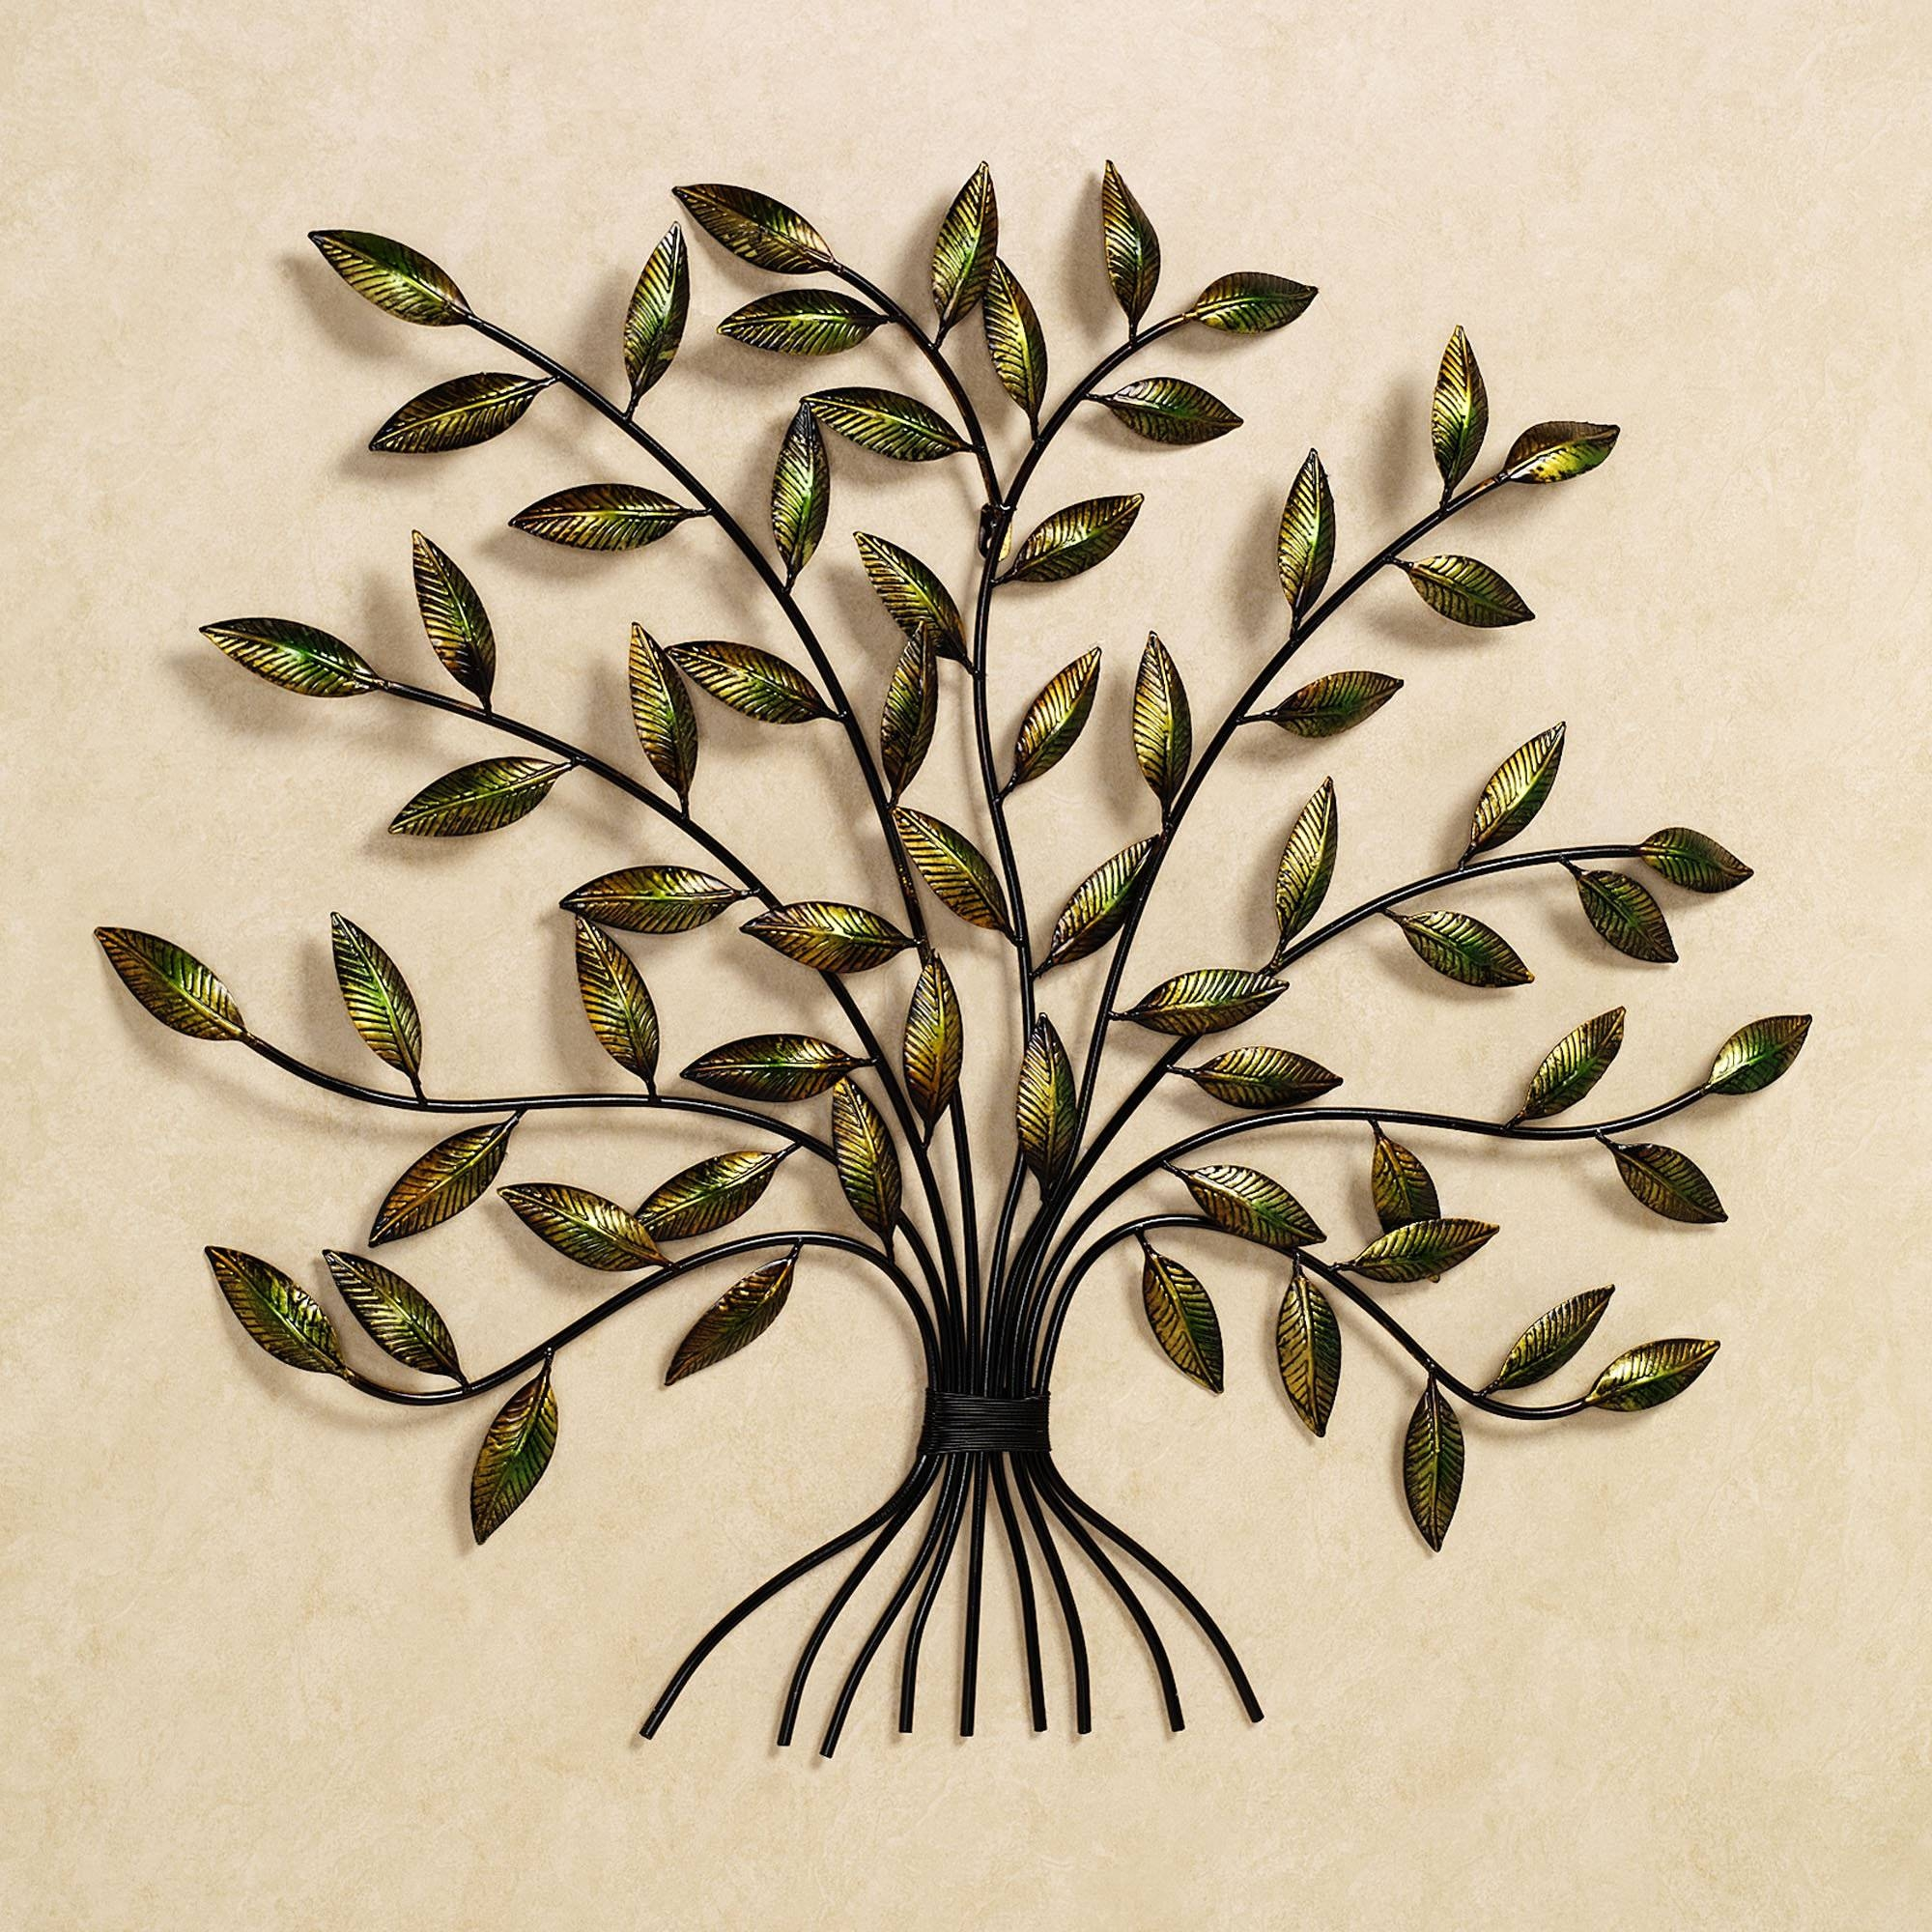 Wall Ideas: Tree Metal Wall Art Images. Design Decor (View 19 of 20)